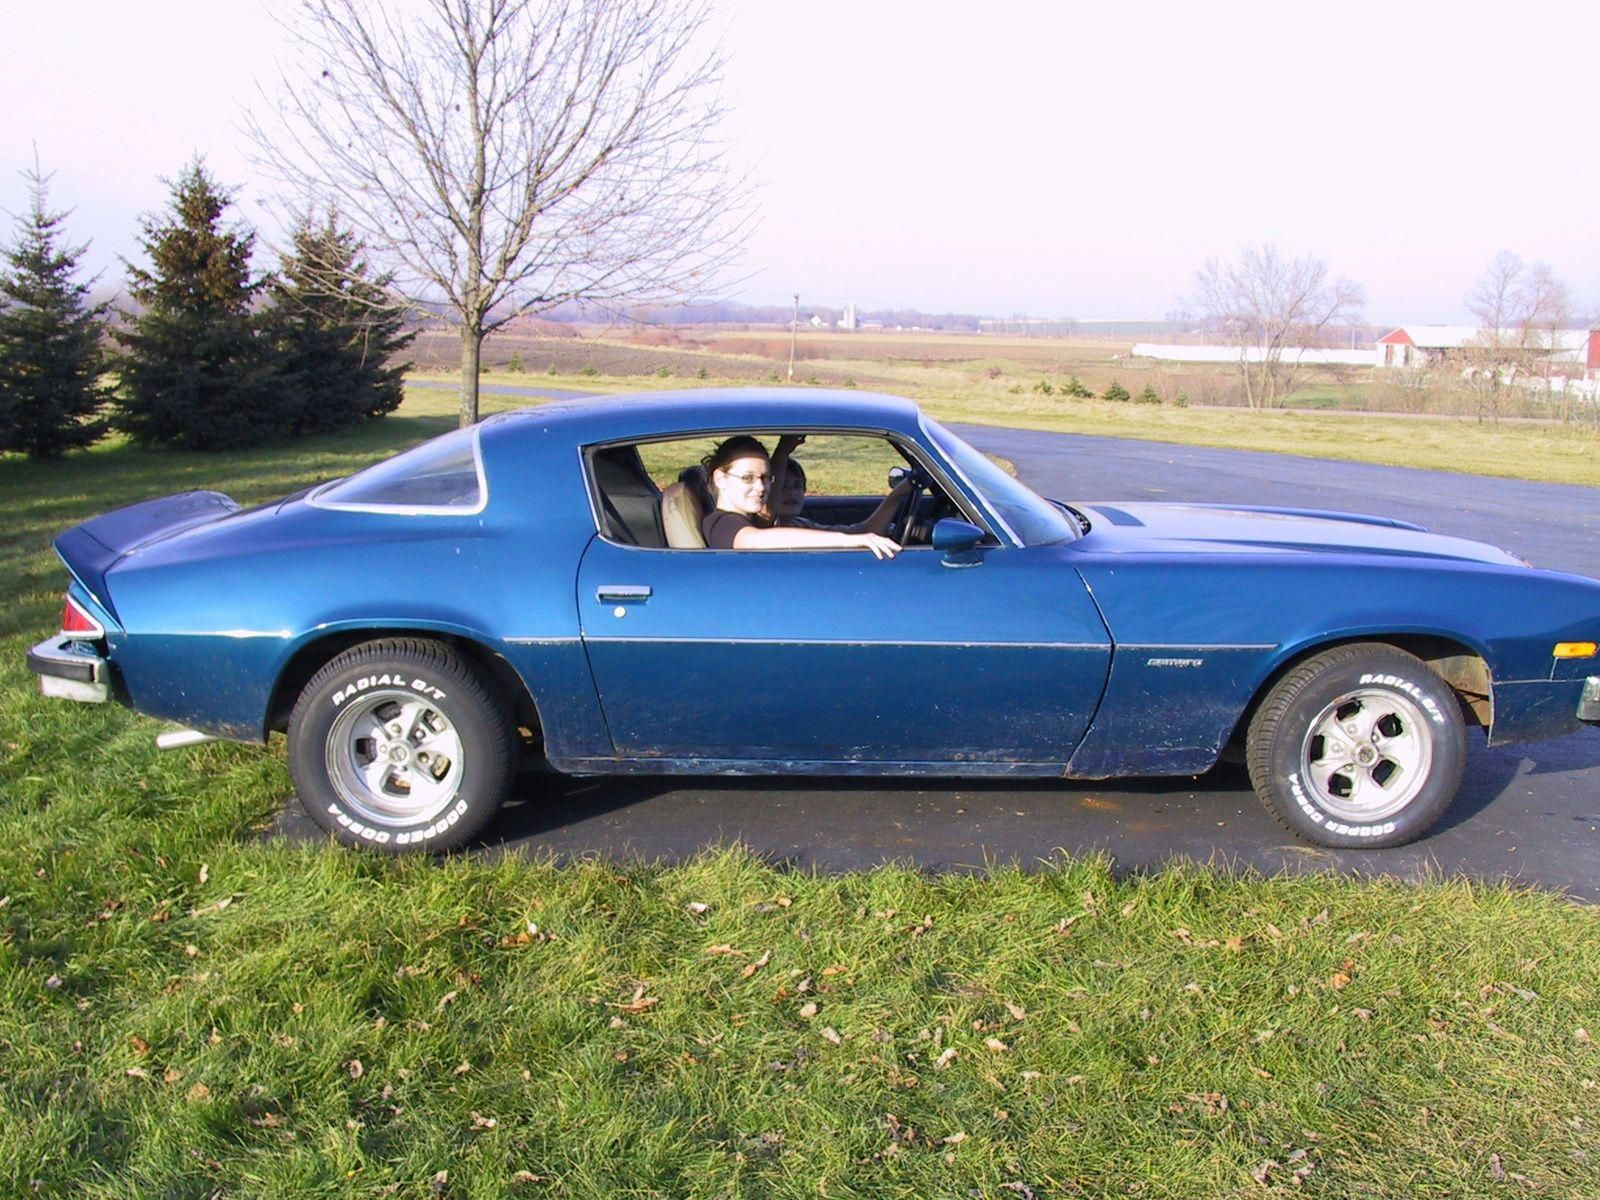 1976 chevrolet camaro the first car i ever purchased bluecamaro [ 1600 x 1200 Pixel ]